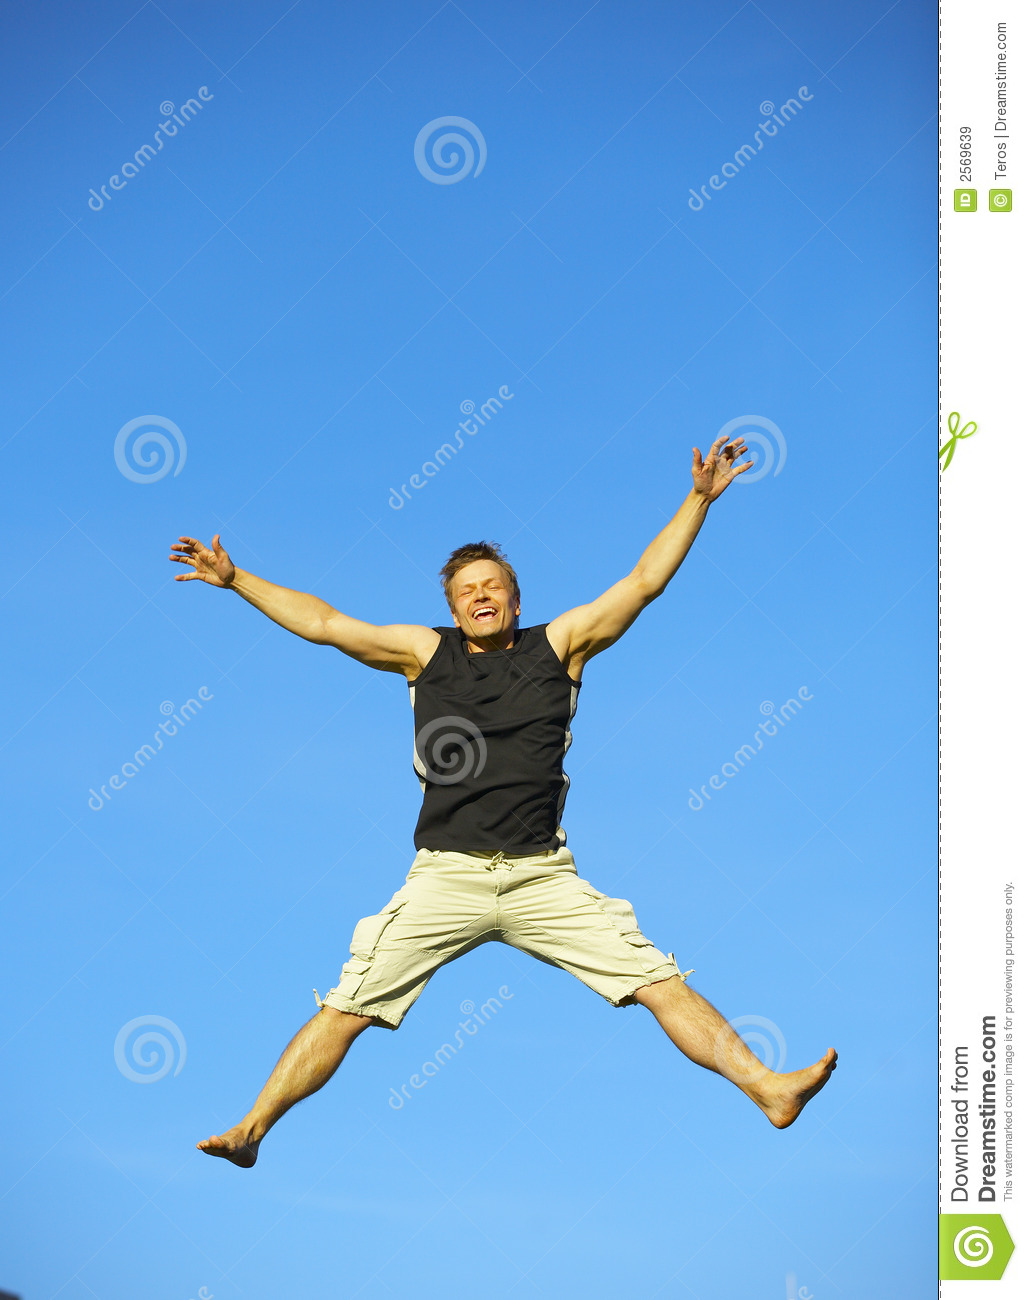 excited man jumping with joy royalty free stock images